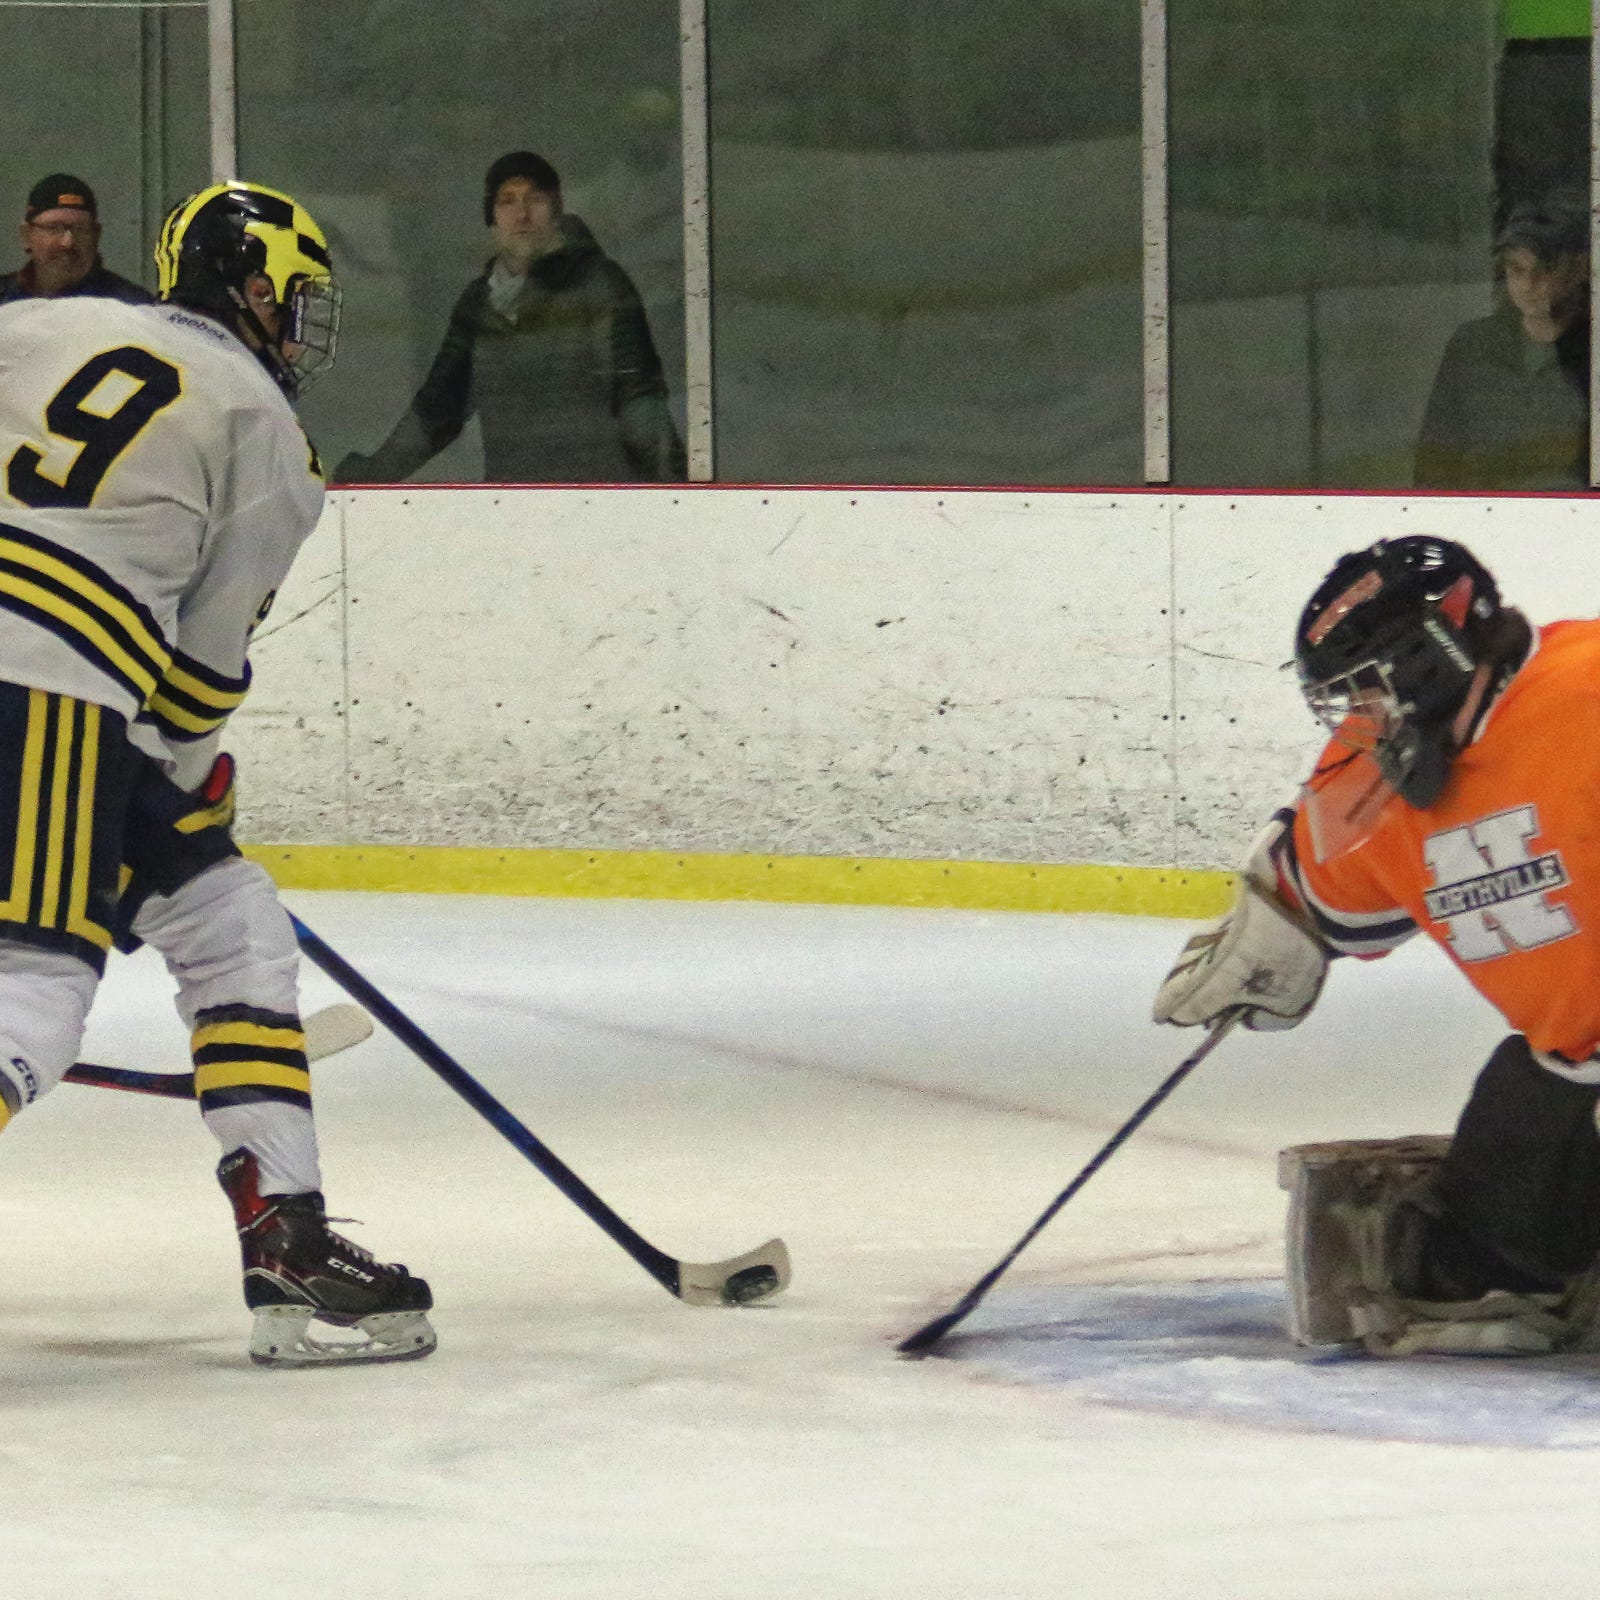 Angry Hartland hockey team routs Northville, 8-0